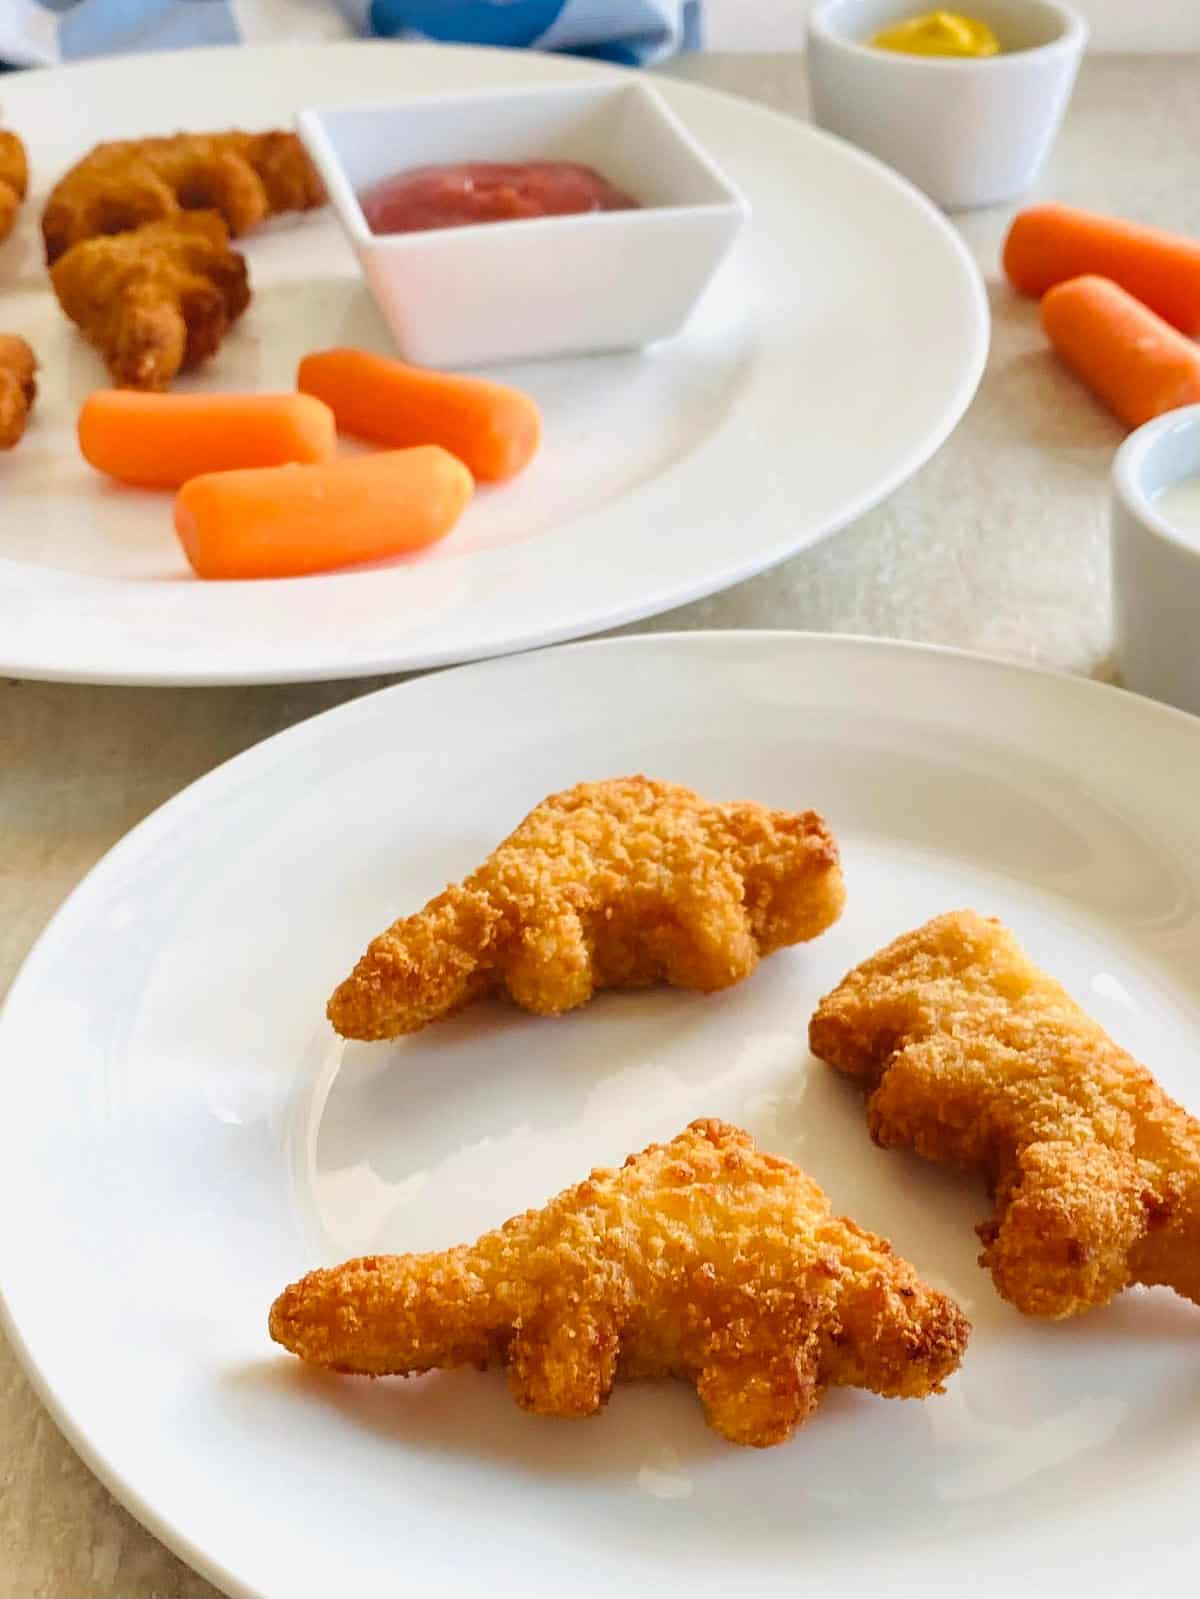 air fryer dino bites on a plate with carrots and dipping sauce